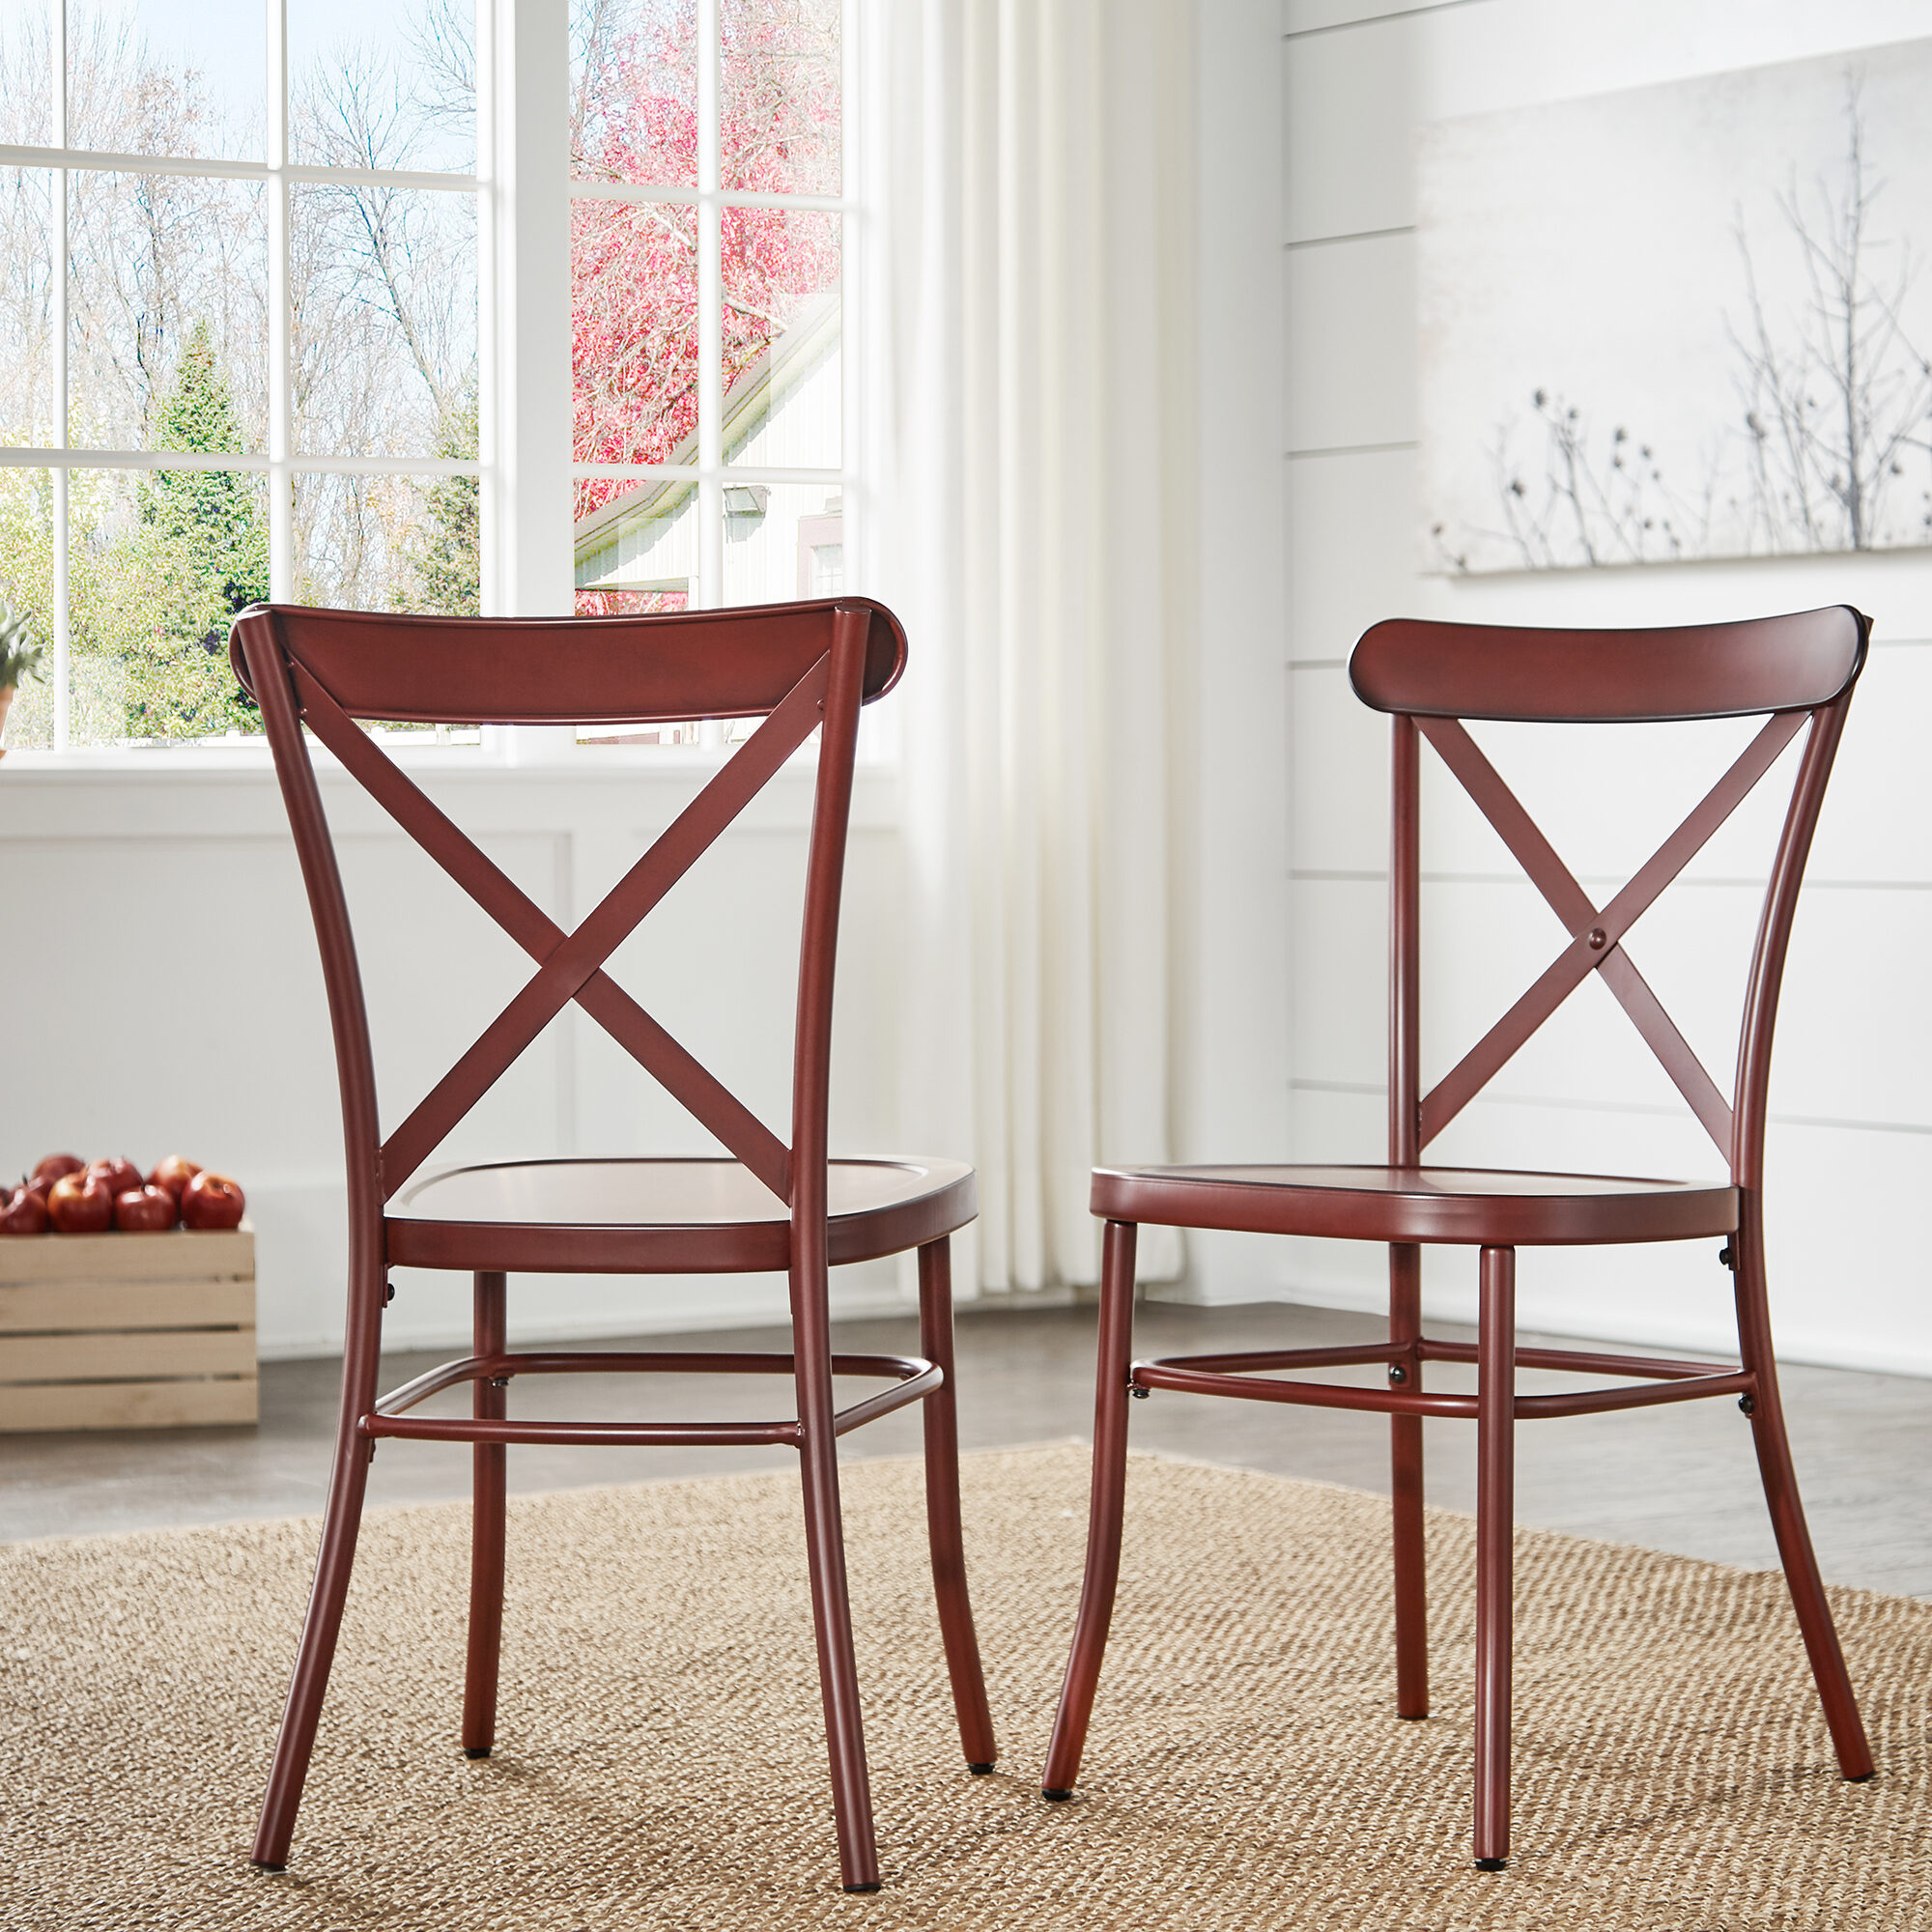 When it comes to chairs, there are a thousand different kinds to choose from! Here is our Antique Berry Red Metal Dining Chairs (Set of 2).